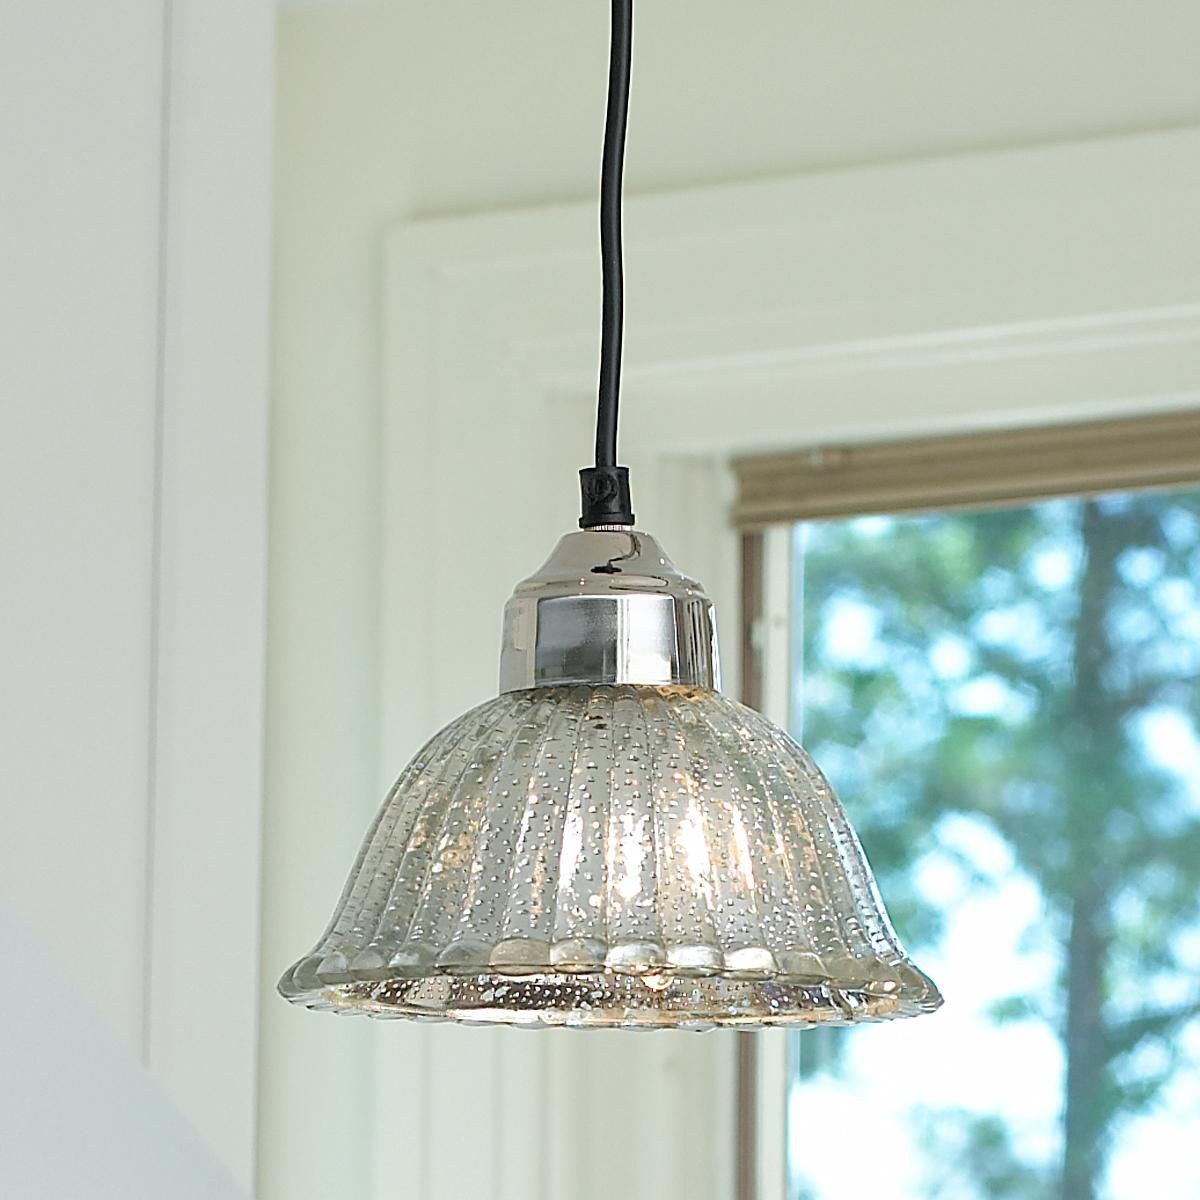 Fluted Mercury Glass Bell Pendant For The Kitchen Glass Shade